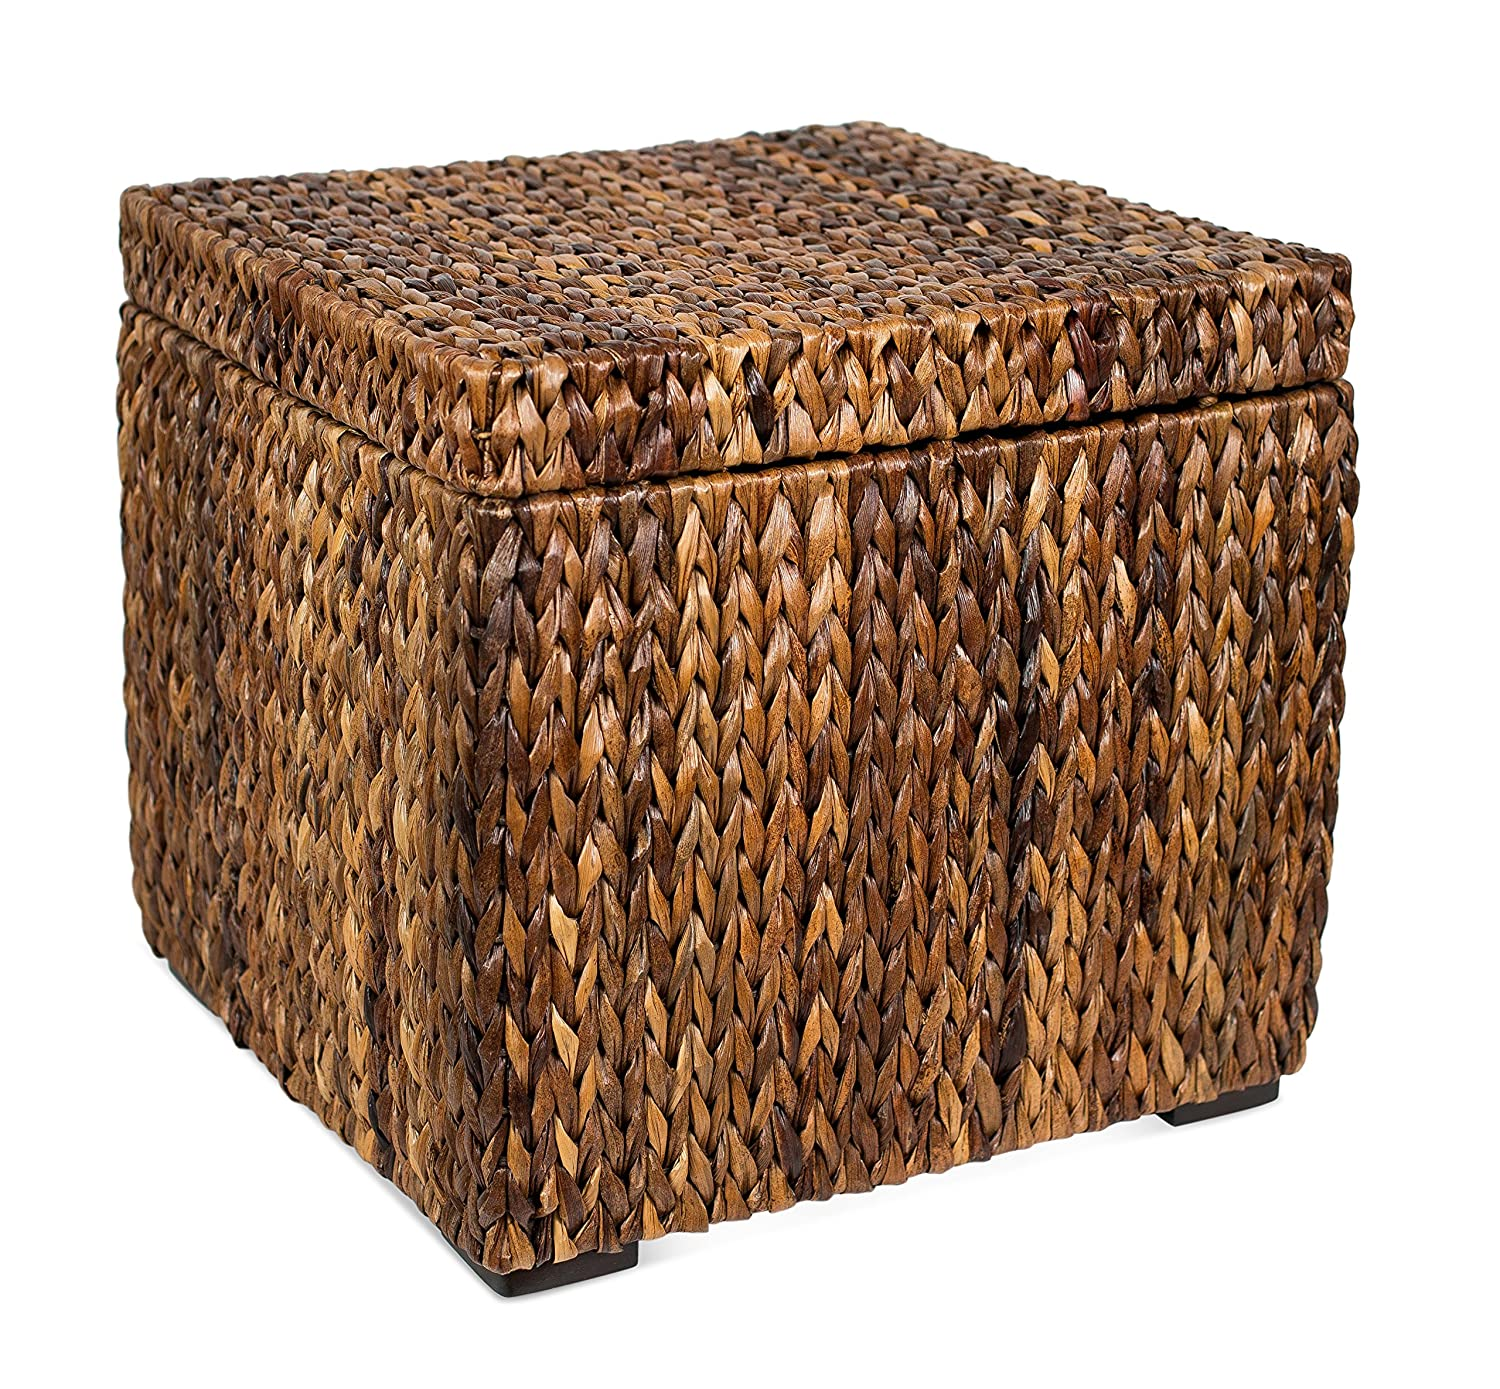 Swell Birdrock Home Woven Storage Cube Abaca Seagrass Decorative Ottoman Living Room Side Table Store Blankets Pillows Magazines Books Remotes Lamtechconsult Wood Chair Design Ideas Lamtechconsultcom